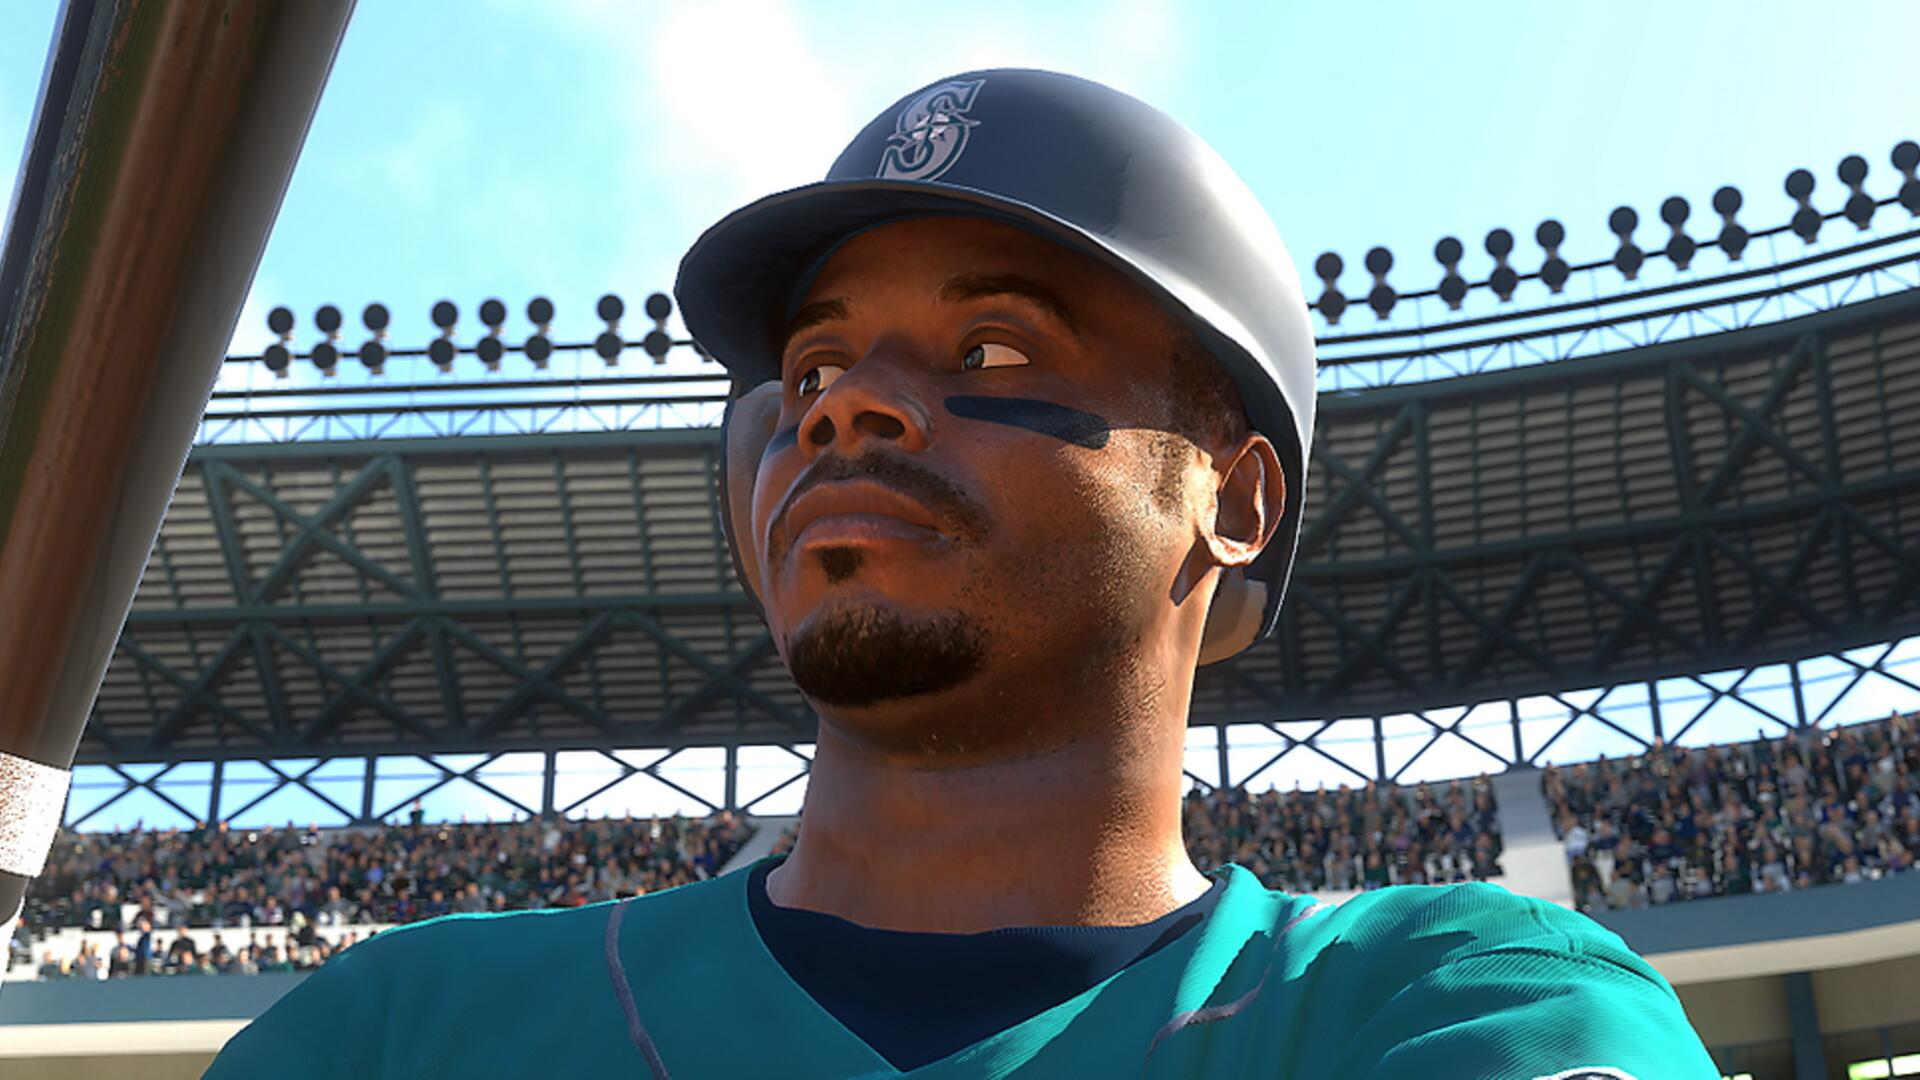 MLB The Show 18 Drops Online Franchise Mode to Players' Dismay